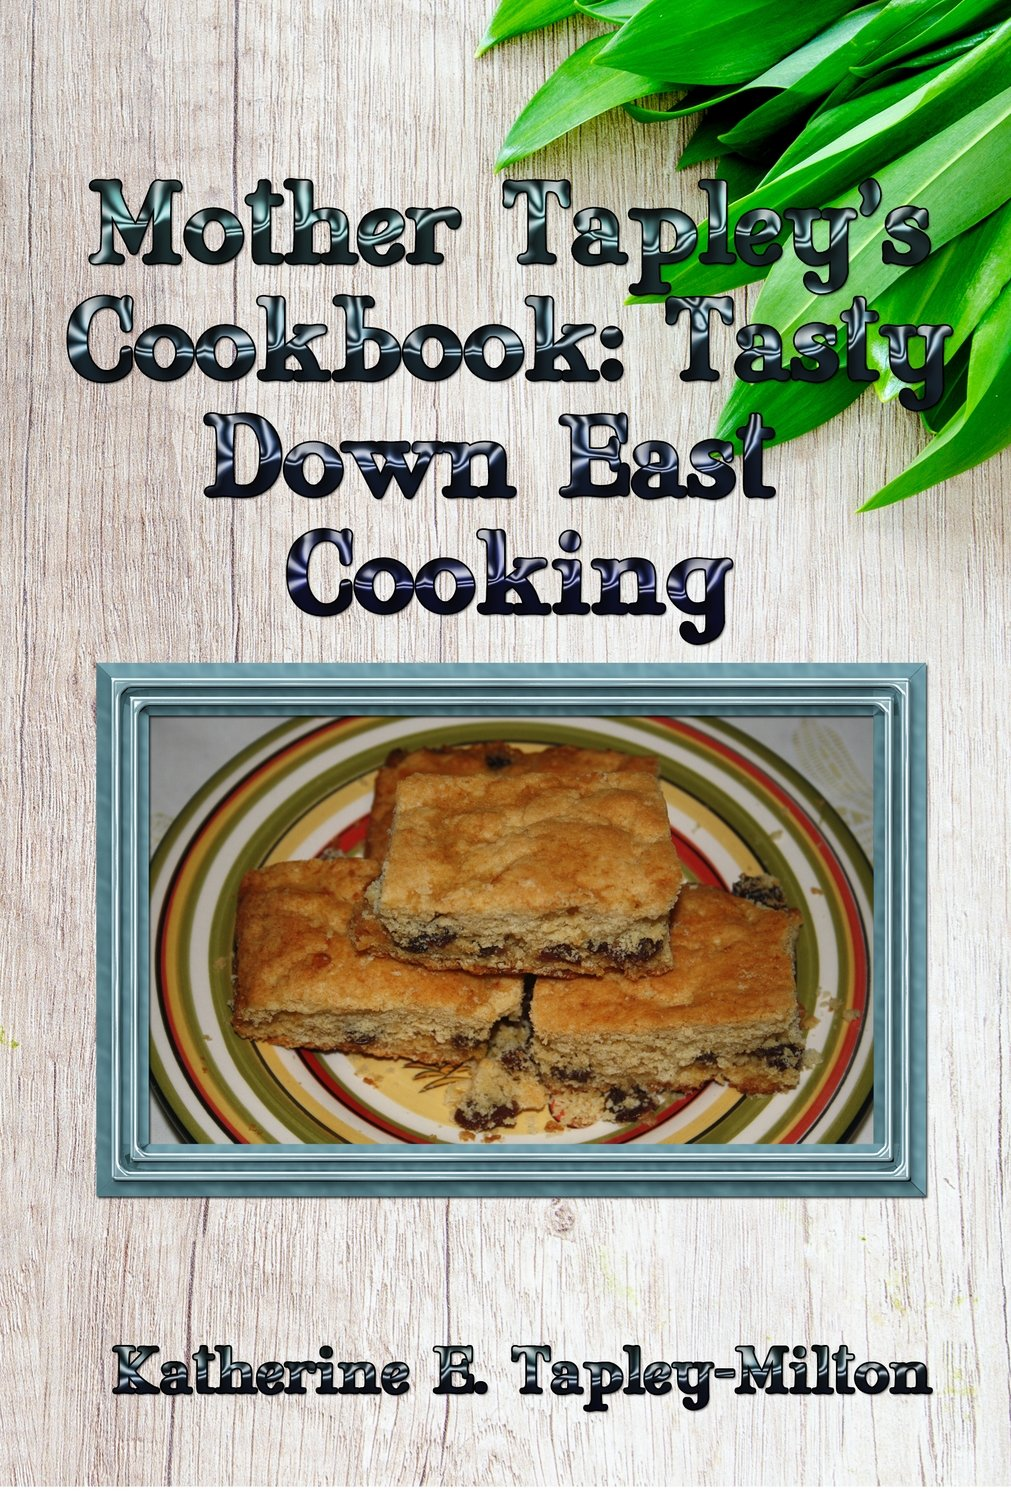 Mother Tapley's Cookbook: Tasty Down East Cooking EPUB